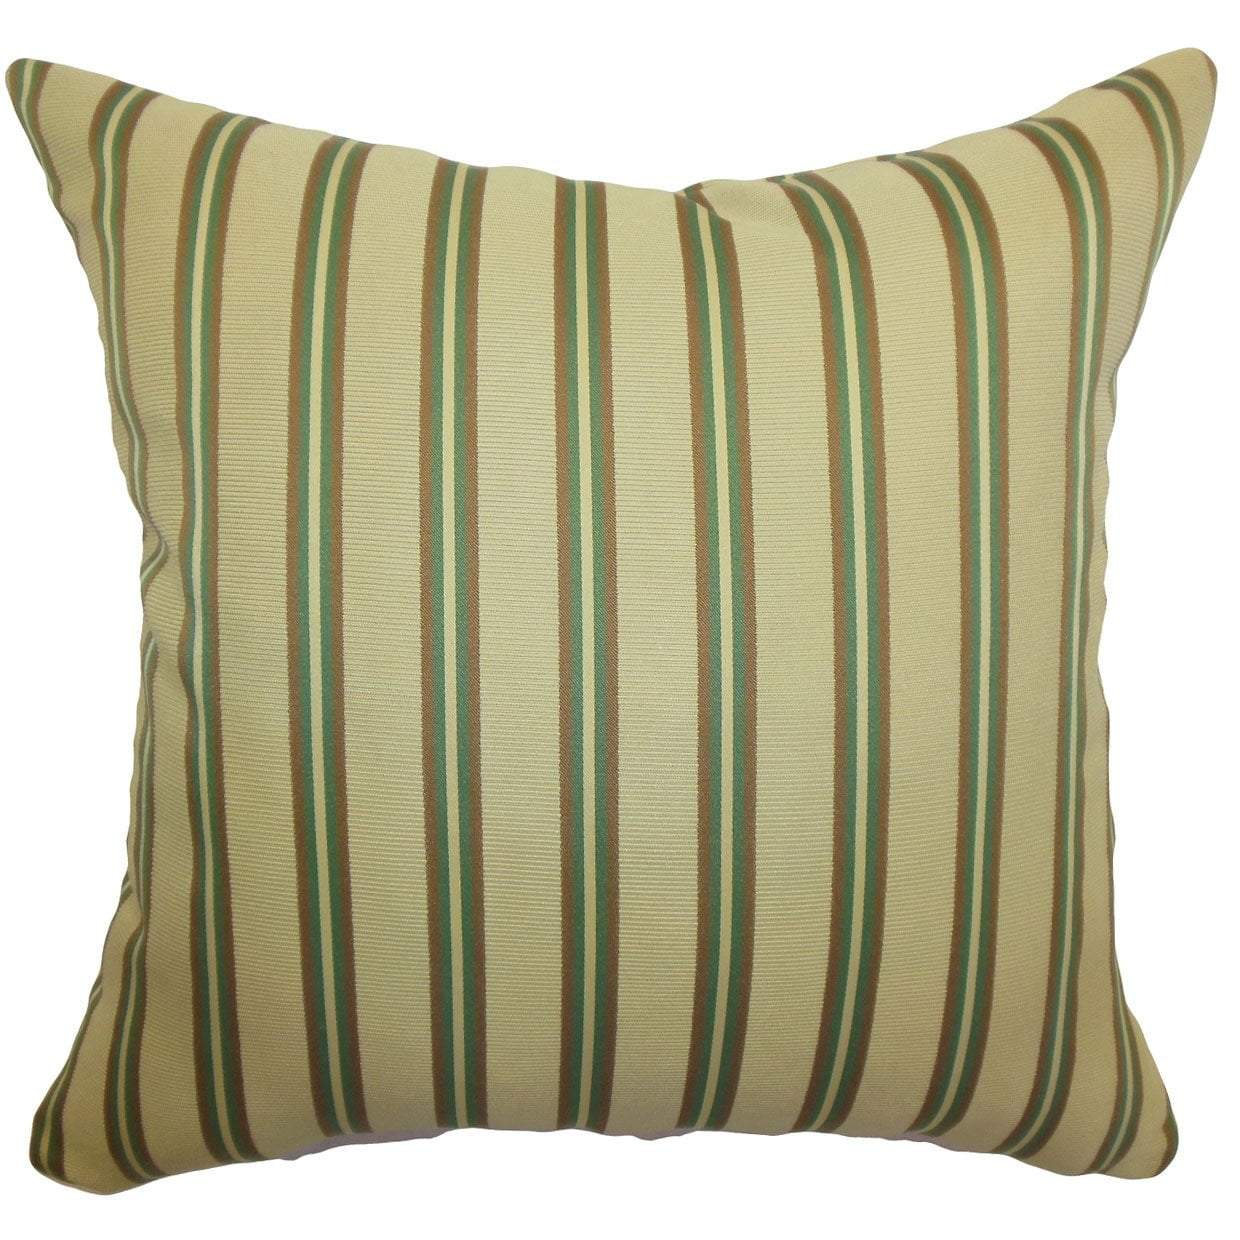 Spence Throw Pillow Cover